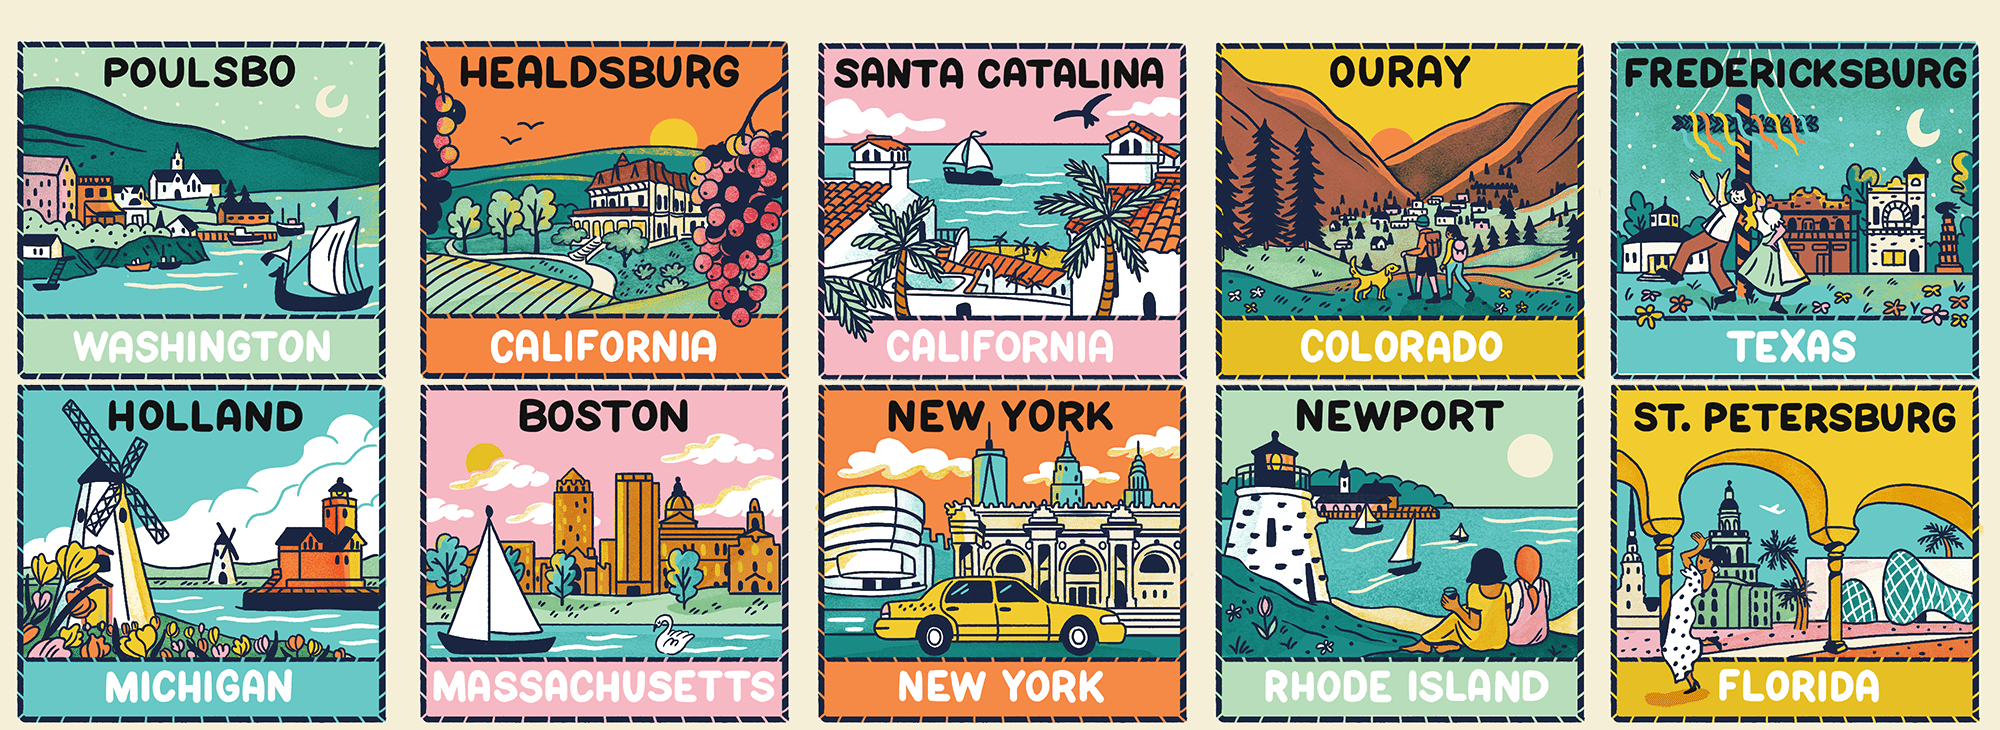 Illustrated collage of cities mentioned in the article